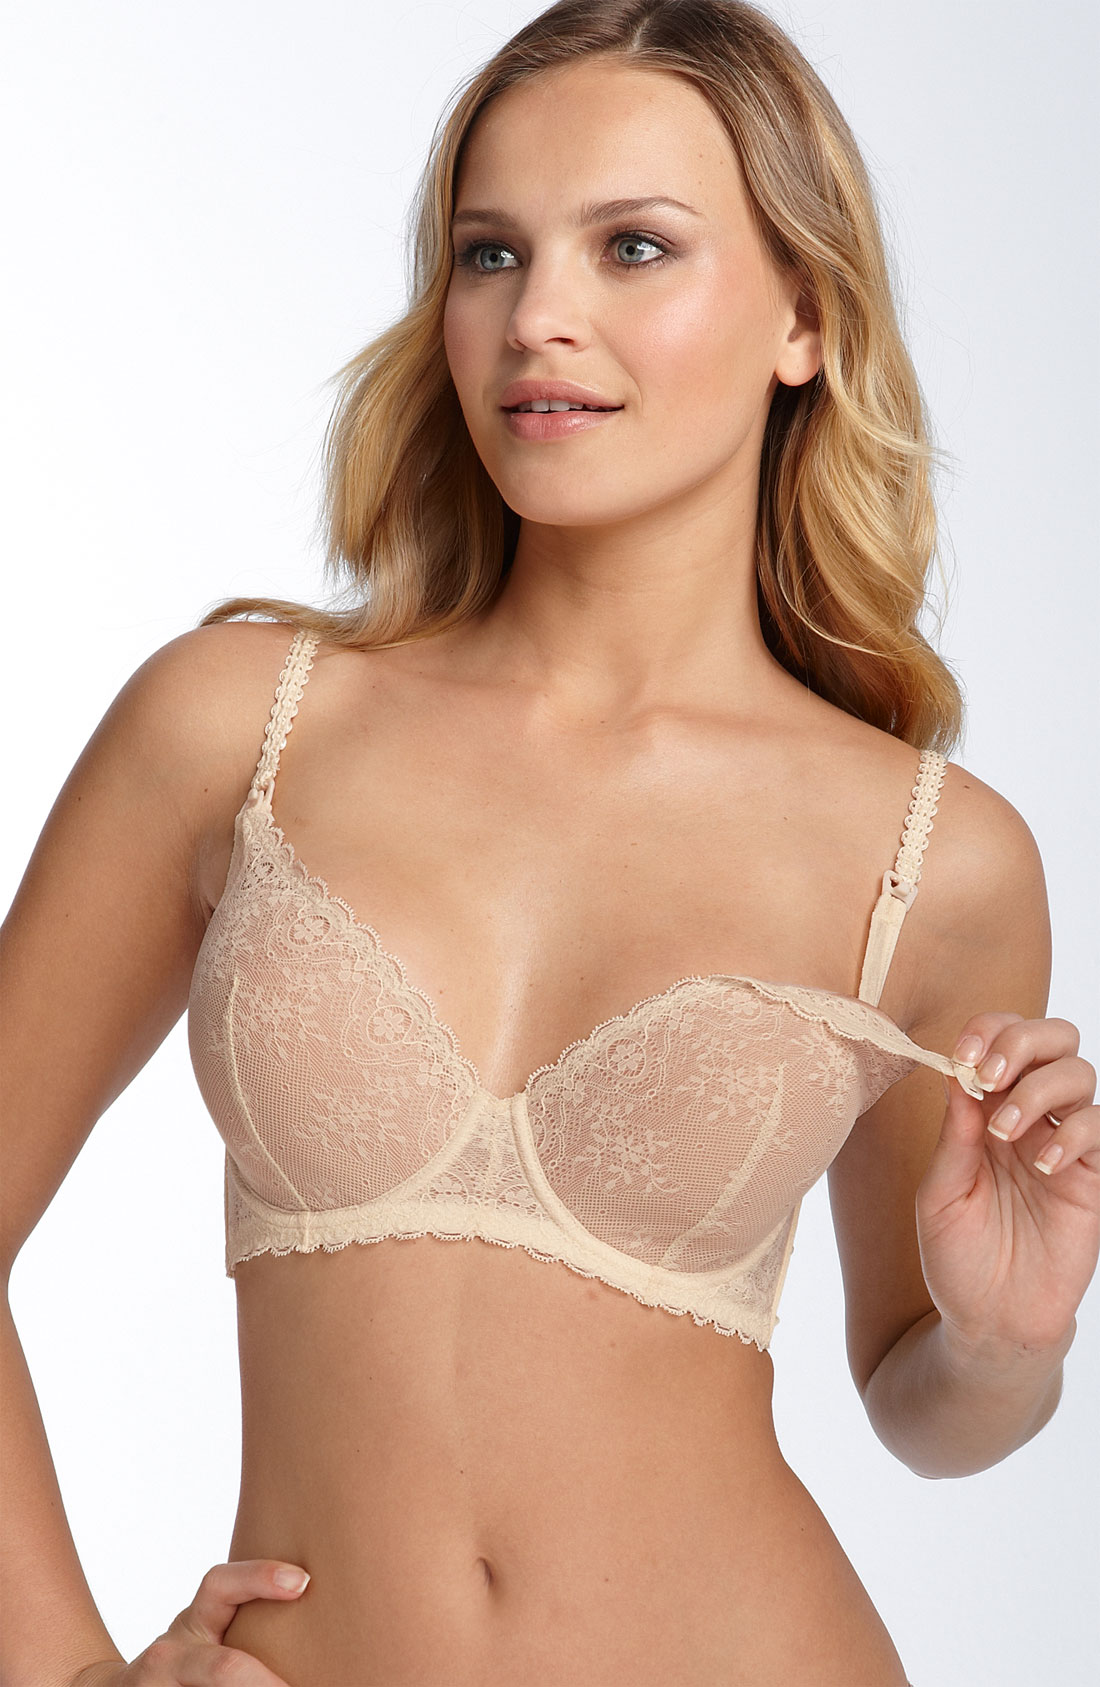 Cake Lingerie recommends maternity bras for during your pregnancy and nursing bras for postpartum. Cake suggests a seamless maternity and nursing bra during the 1st trimester & immediately post birth. The soft-cup range or contour range, with or without flexible .